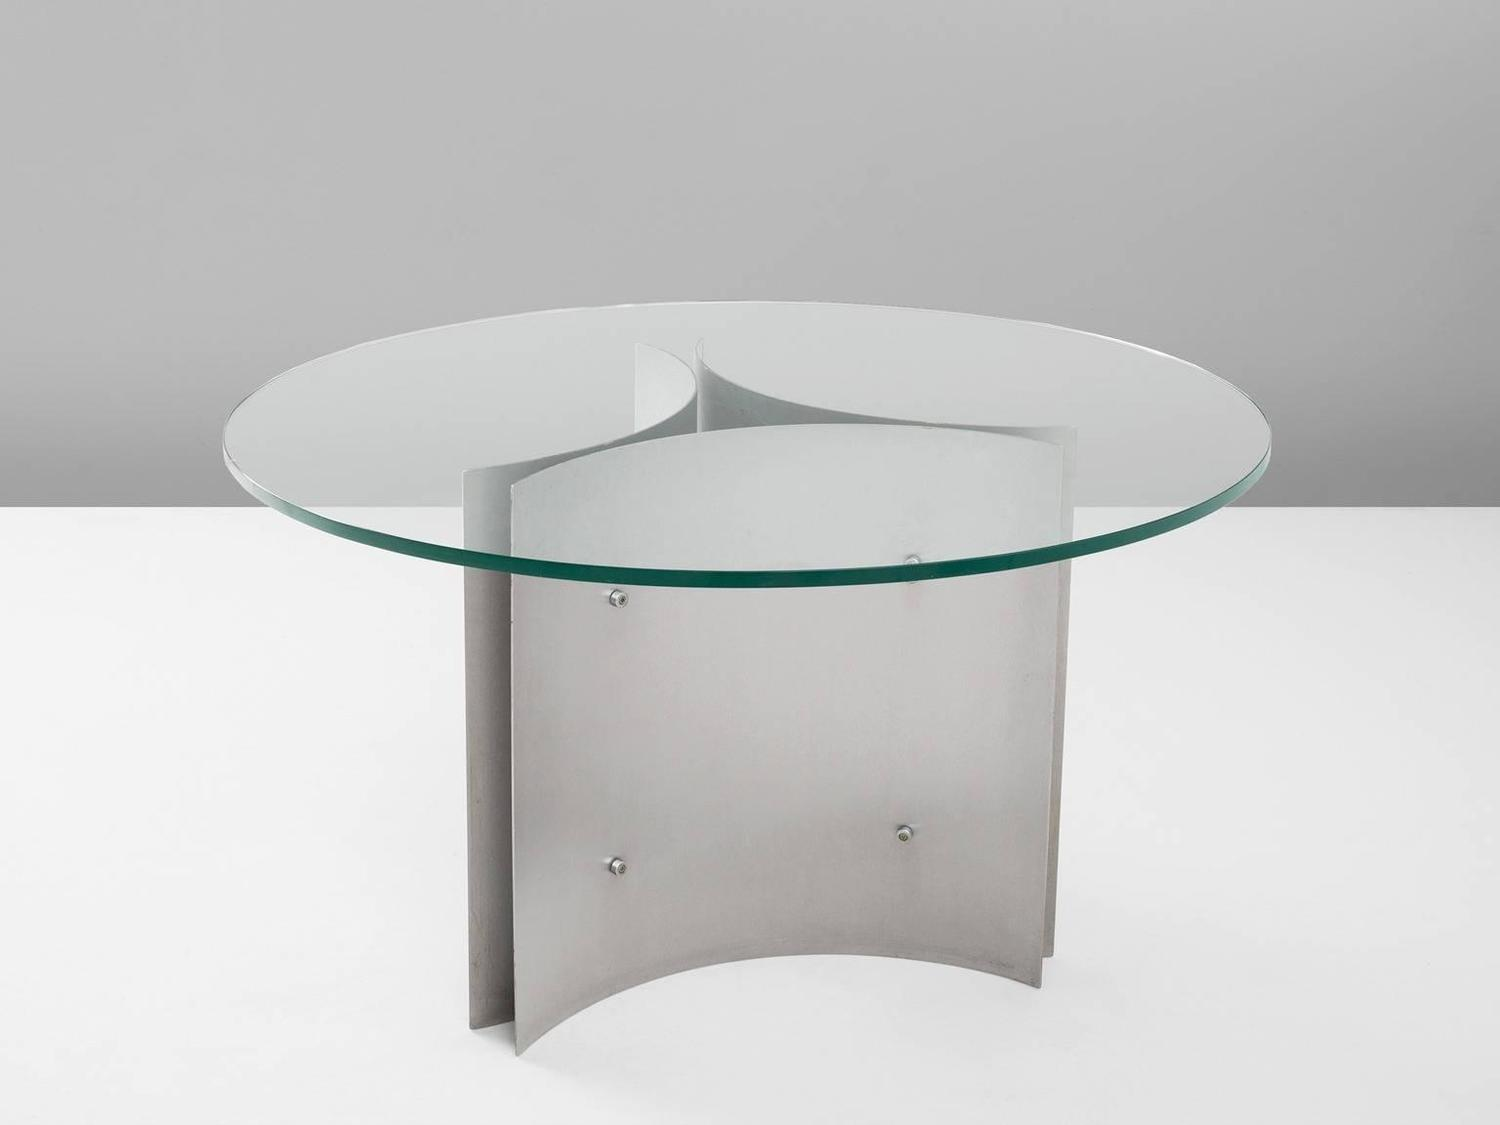 round pedestal dining table in steel and glass for sale at 1stdibs. Black Bedroom Furniture Sets. Home Design Ideas